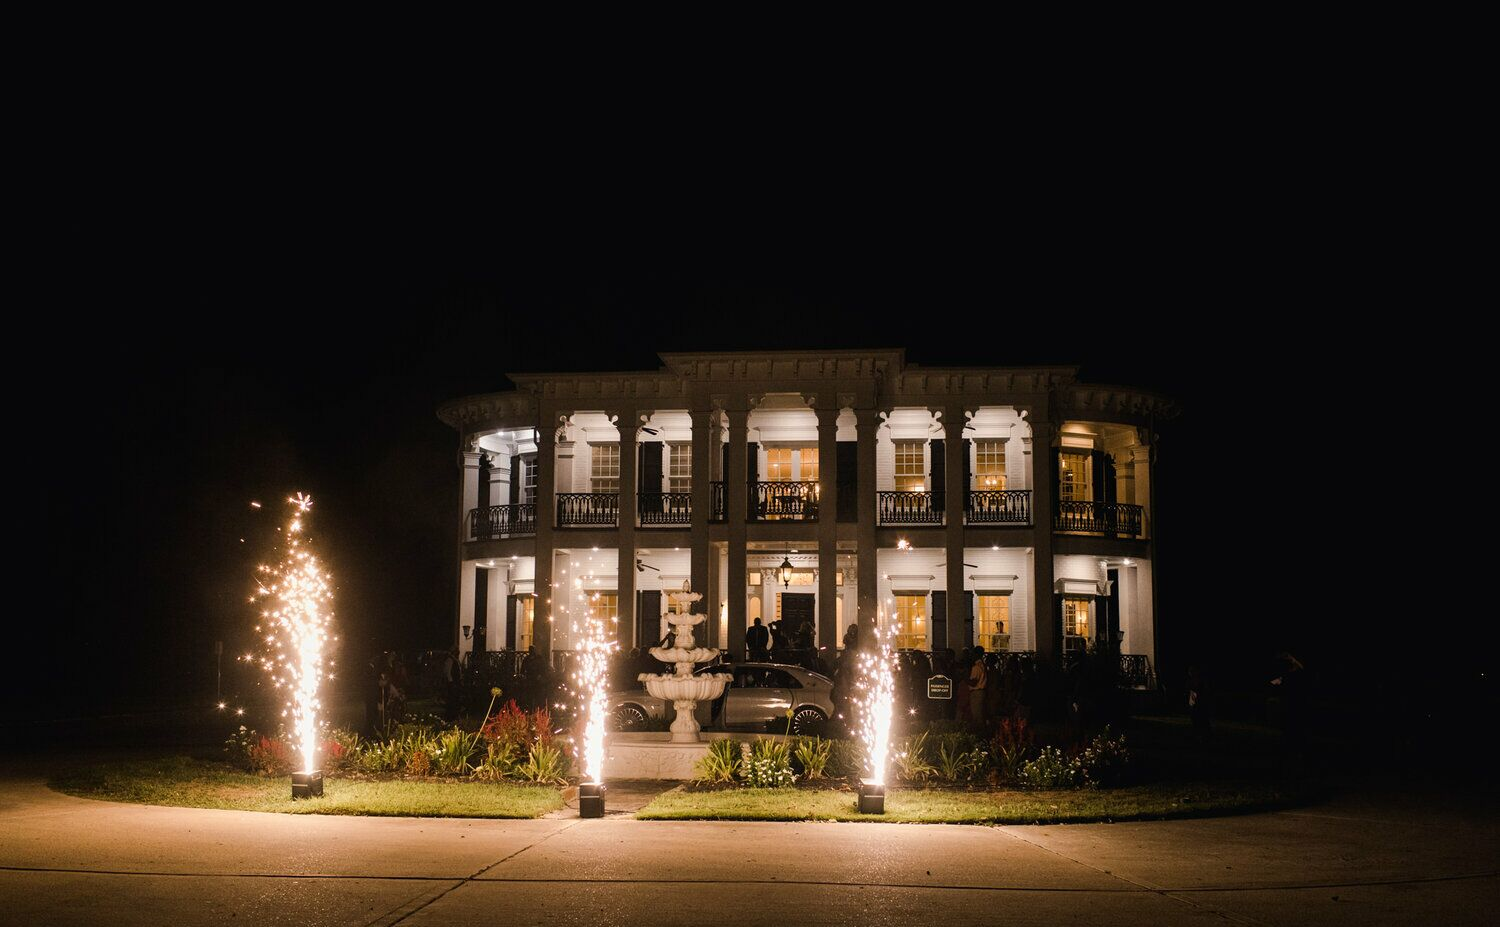 Sandlewood Manor - Mansion - Tomball, TX